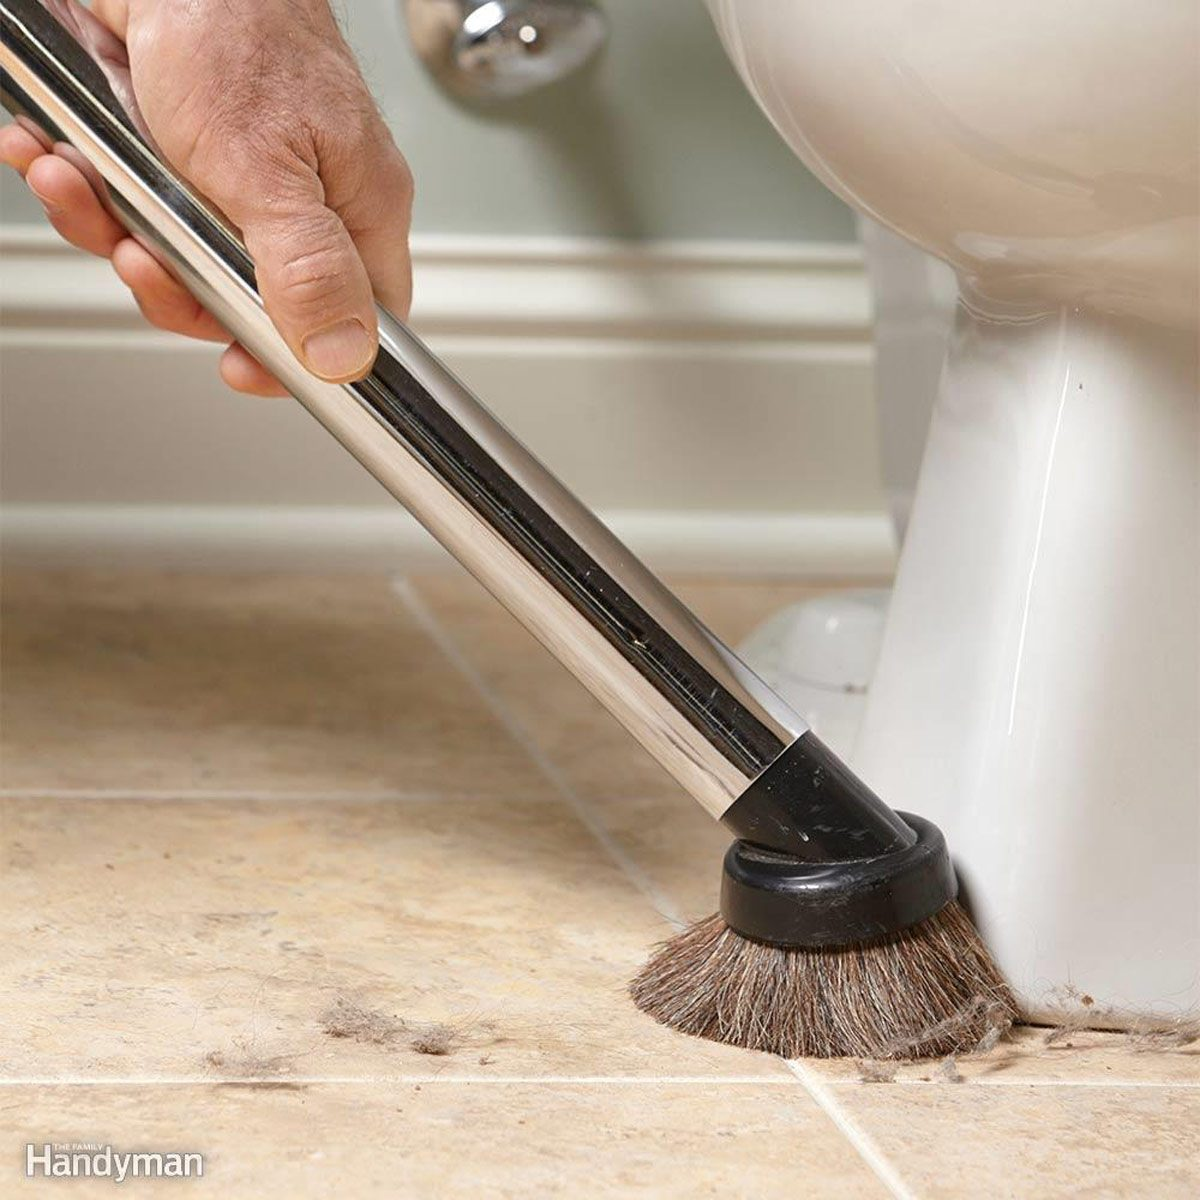 How To Clean A Bathroom Faster And Better The Family Handyman - Fastest way to clean a bathroom